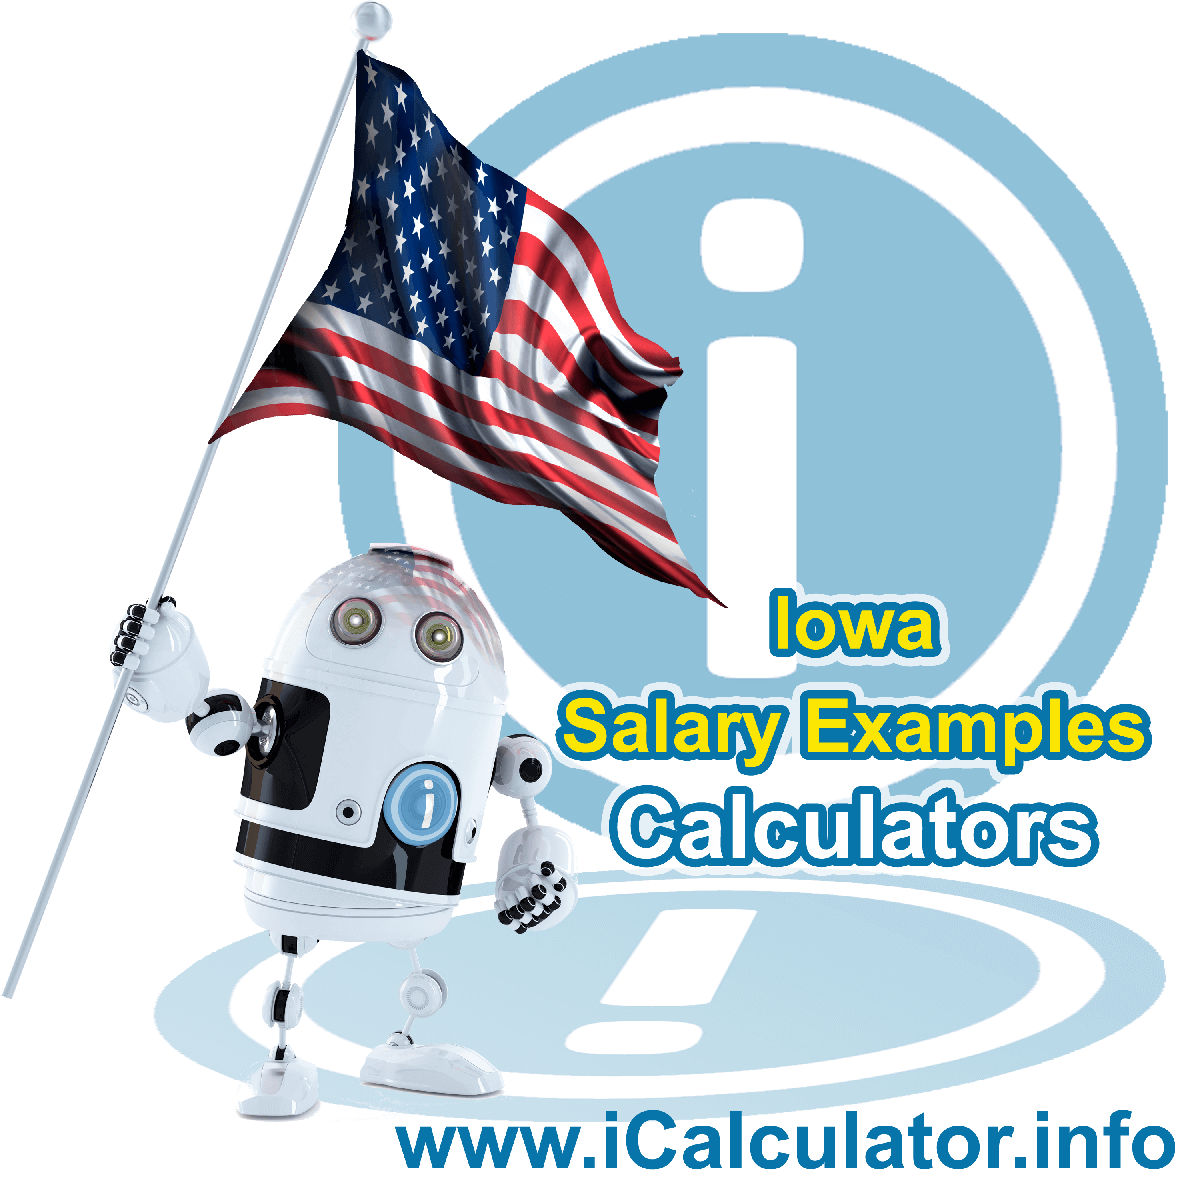 Iowa Salary Example for $180.00 in 2020 | iCalculator | $180.00 salary example for employee and employer paying Iowa State tincome taxes. Detailed salary after tax calculation including Iowa State Tax, Federal State Tax, Medicare Deductions, Social Security, Capital Gains and other income tax and salary deductions complete with supporting Iowa state tax tables